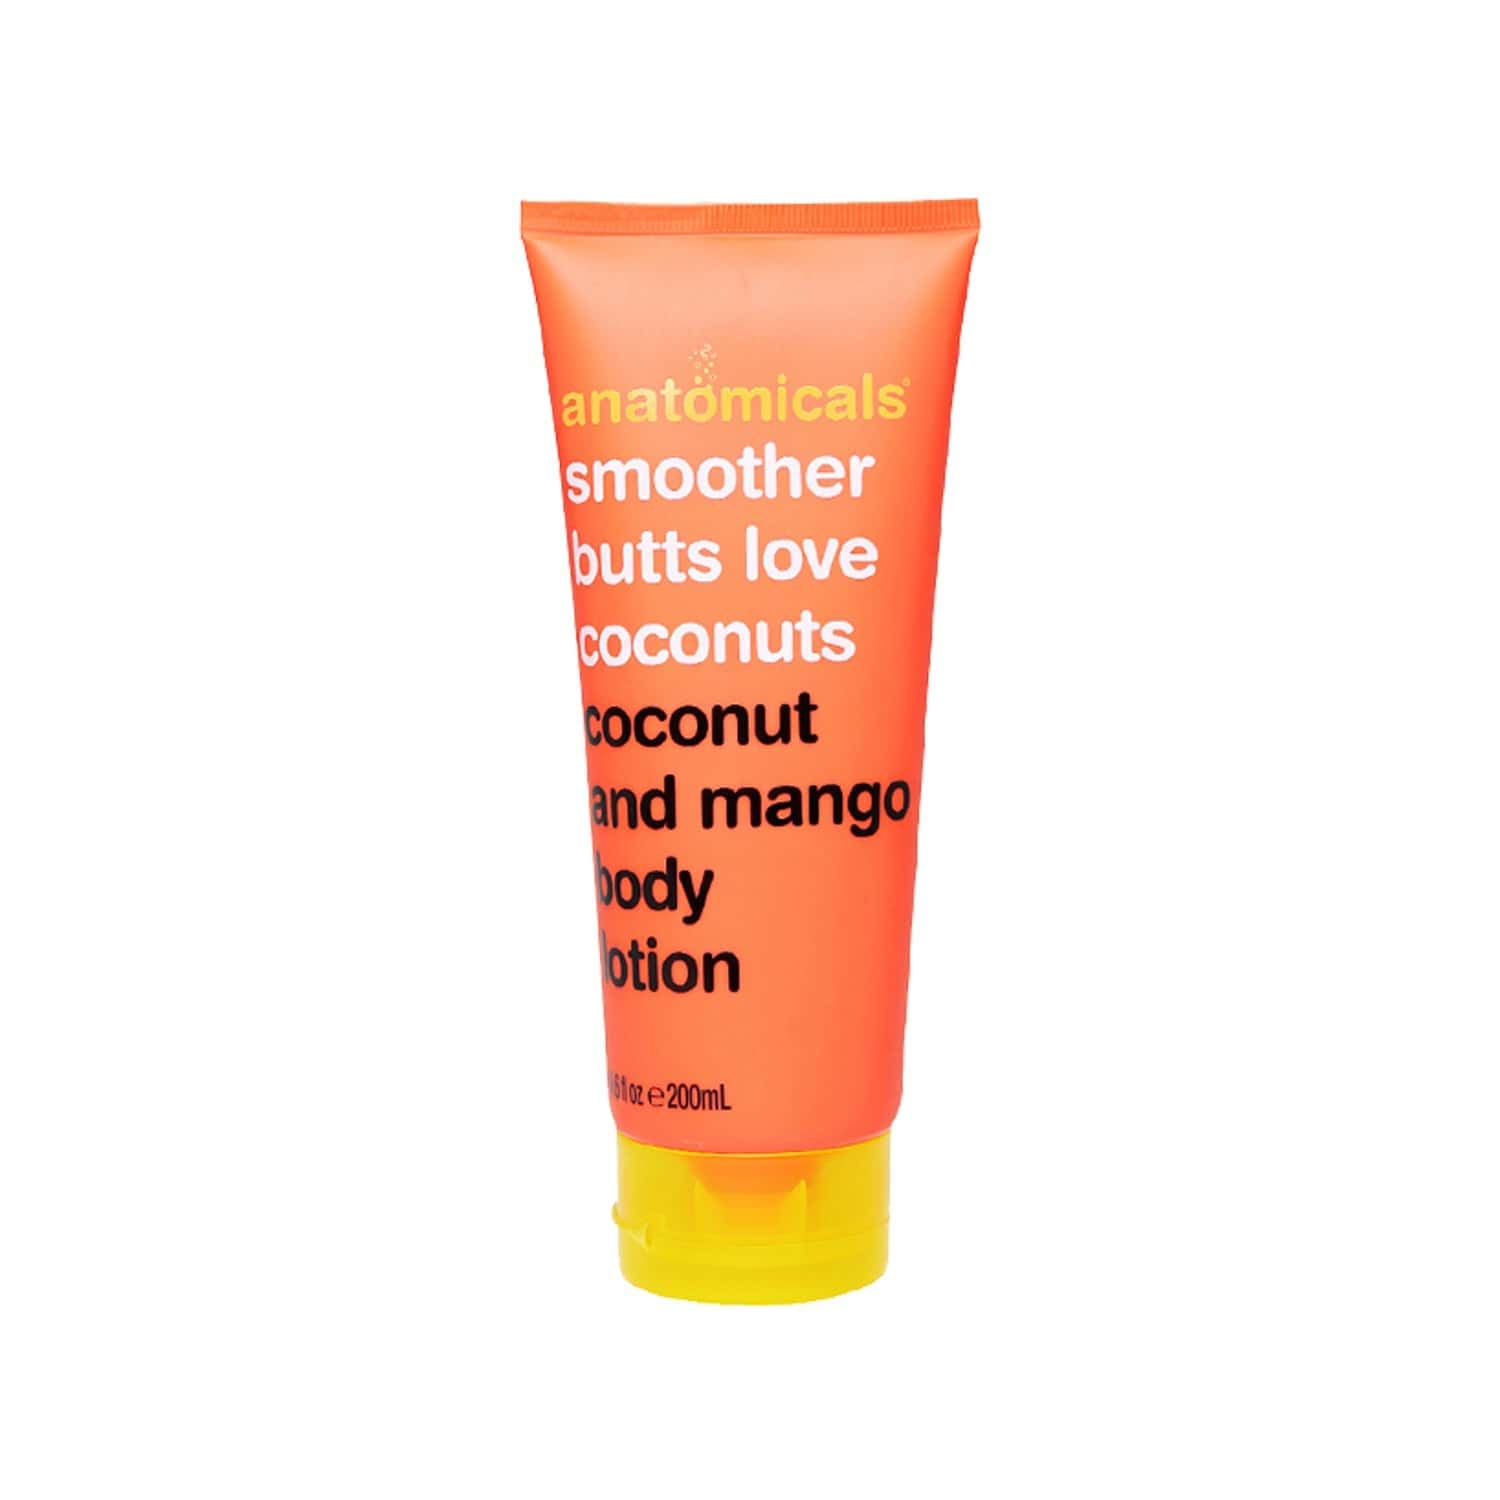 Anatomicals Coconut And Mango Body Lotion 200 Ml